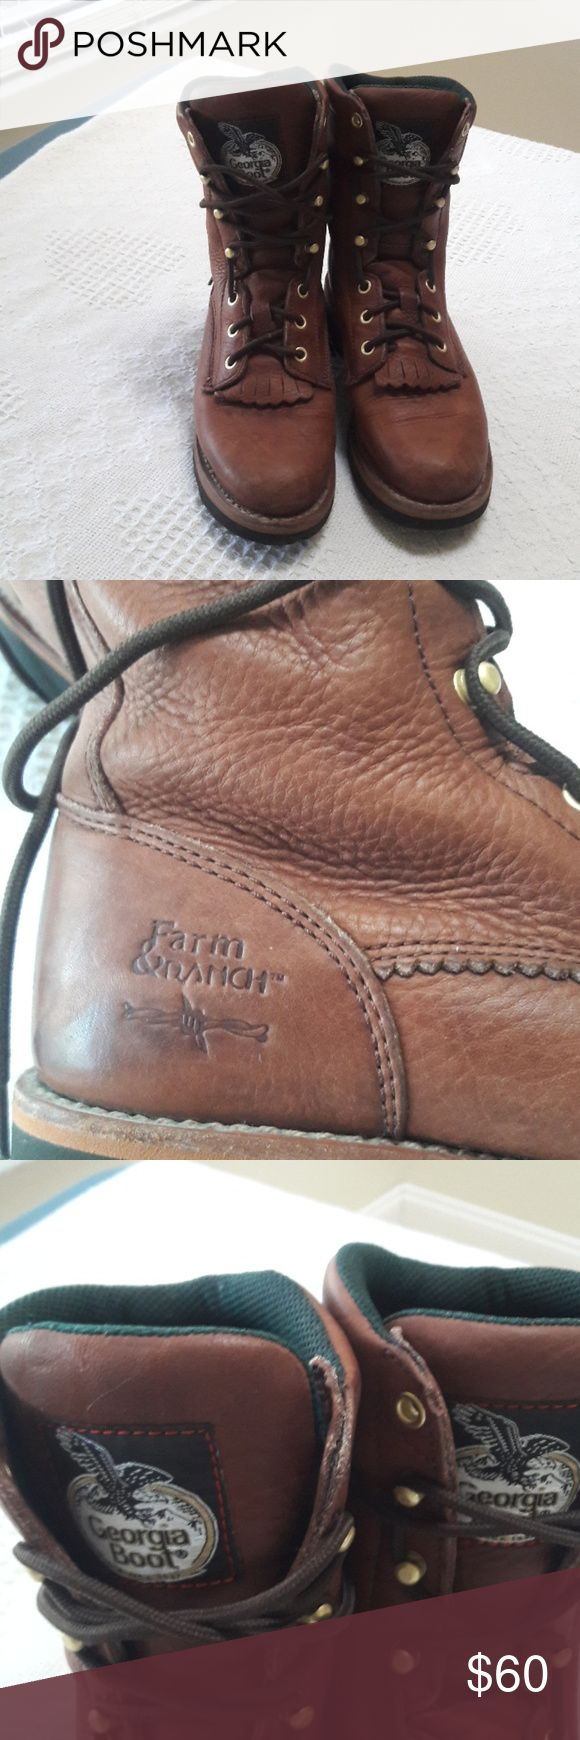 Georgia Boots Georgia boots Size 7 Georgia boots Shoes Lace Up Boots